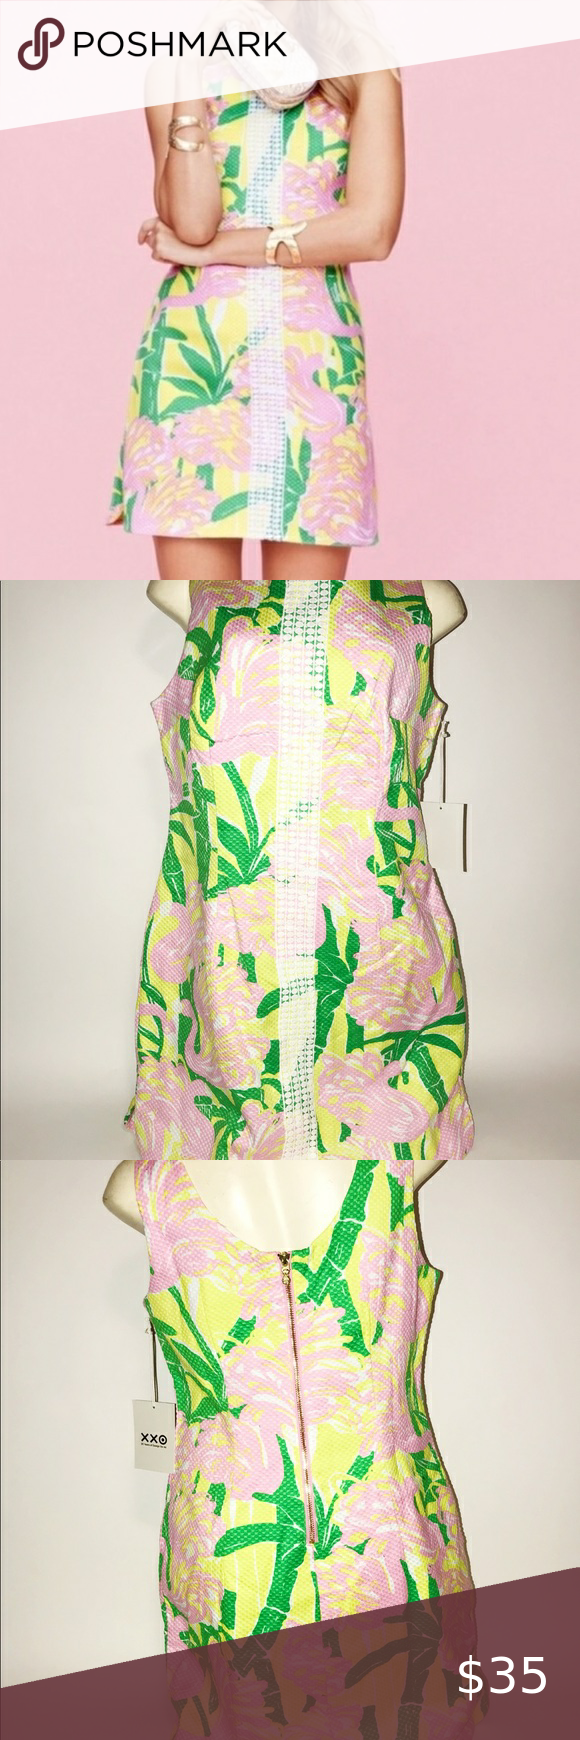 Lilly Pulitzer For Target Women S Dress Size 14 Target Womens Dresses Size 14 Dresses Womens Dresses [ 1740 x 580 Pixel ]